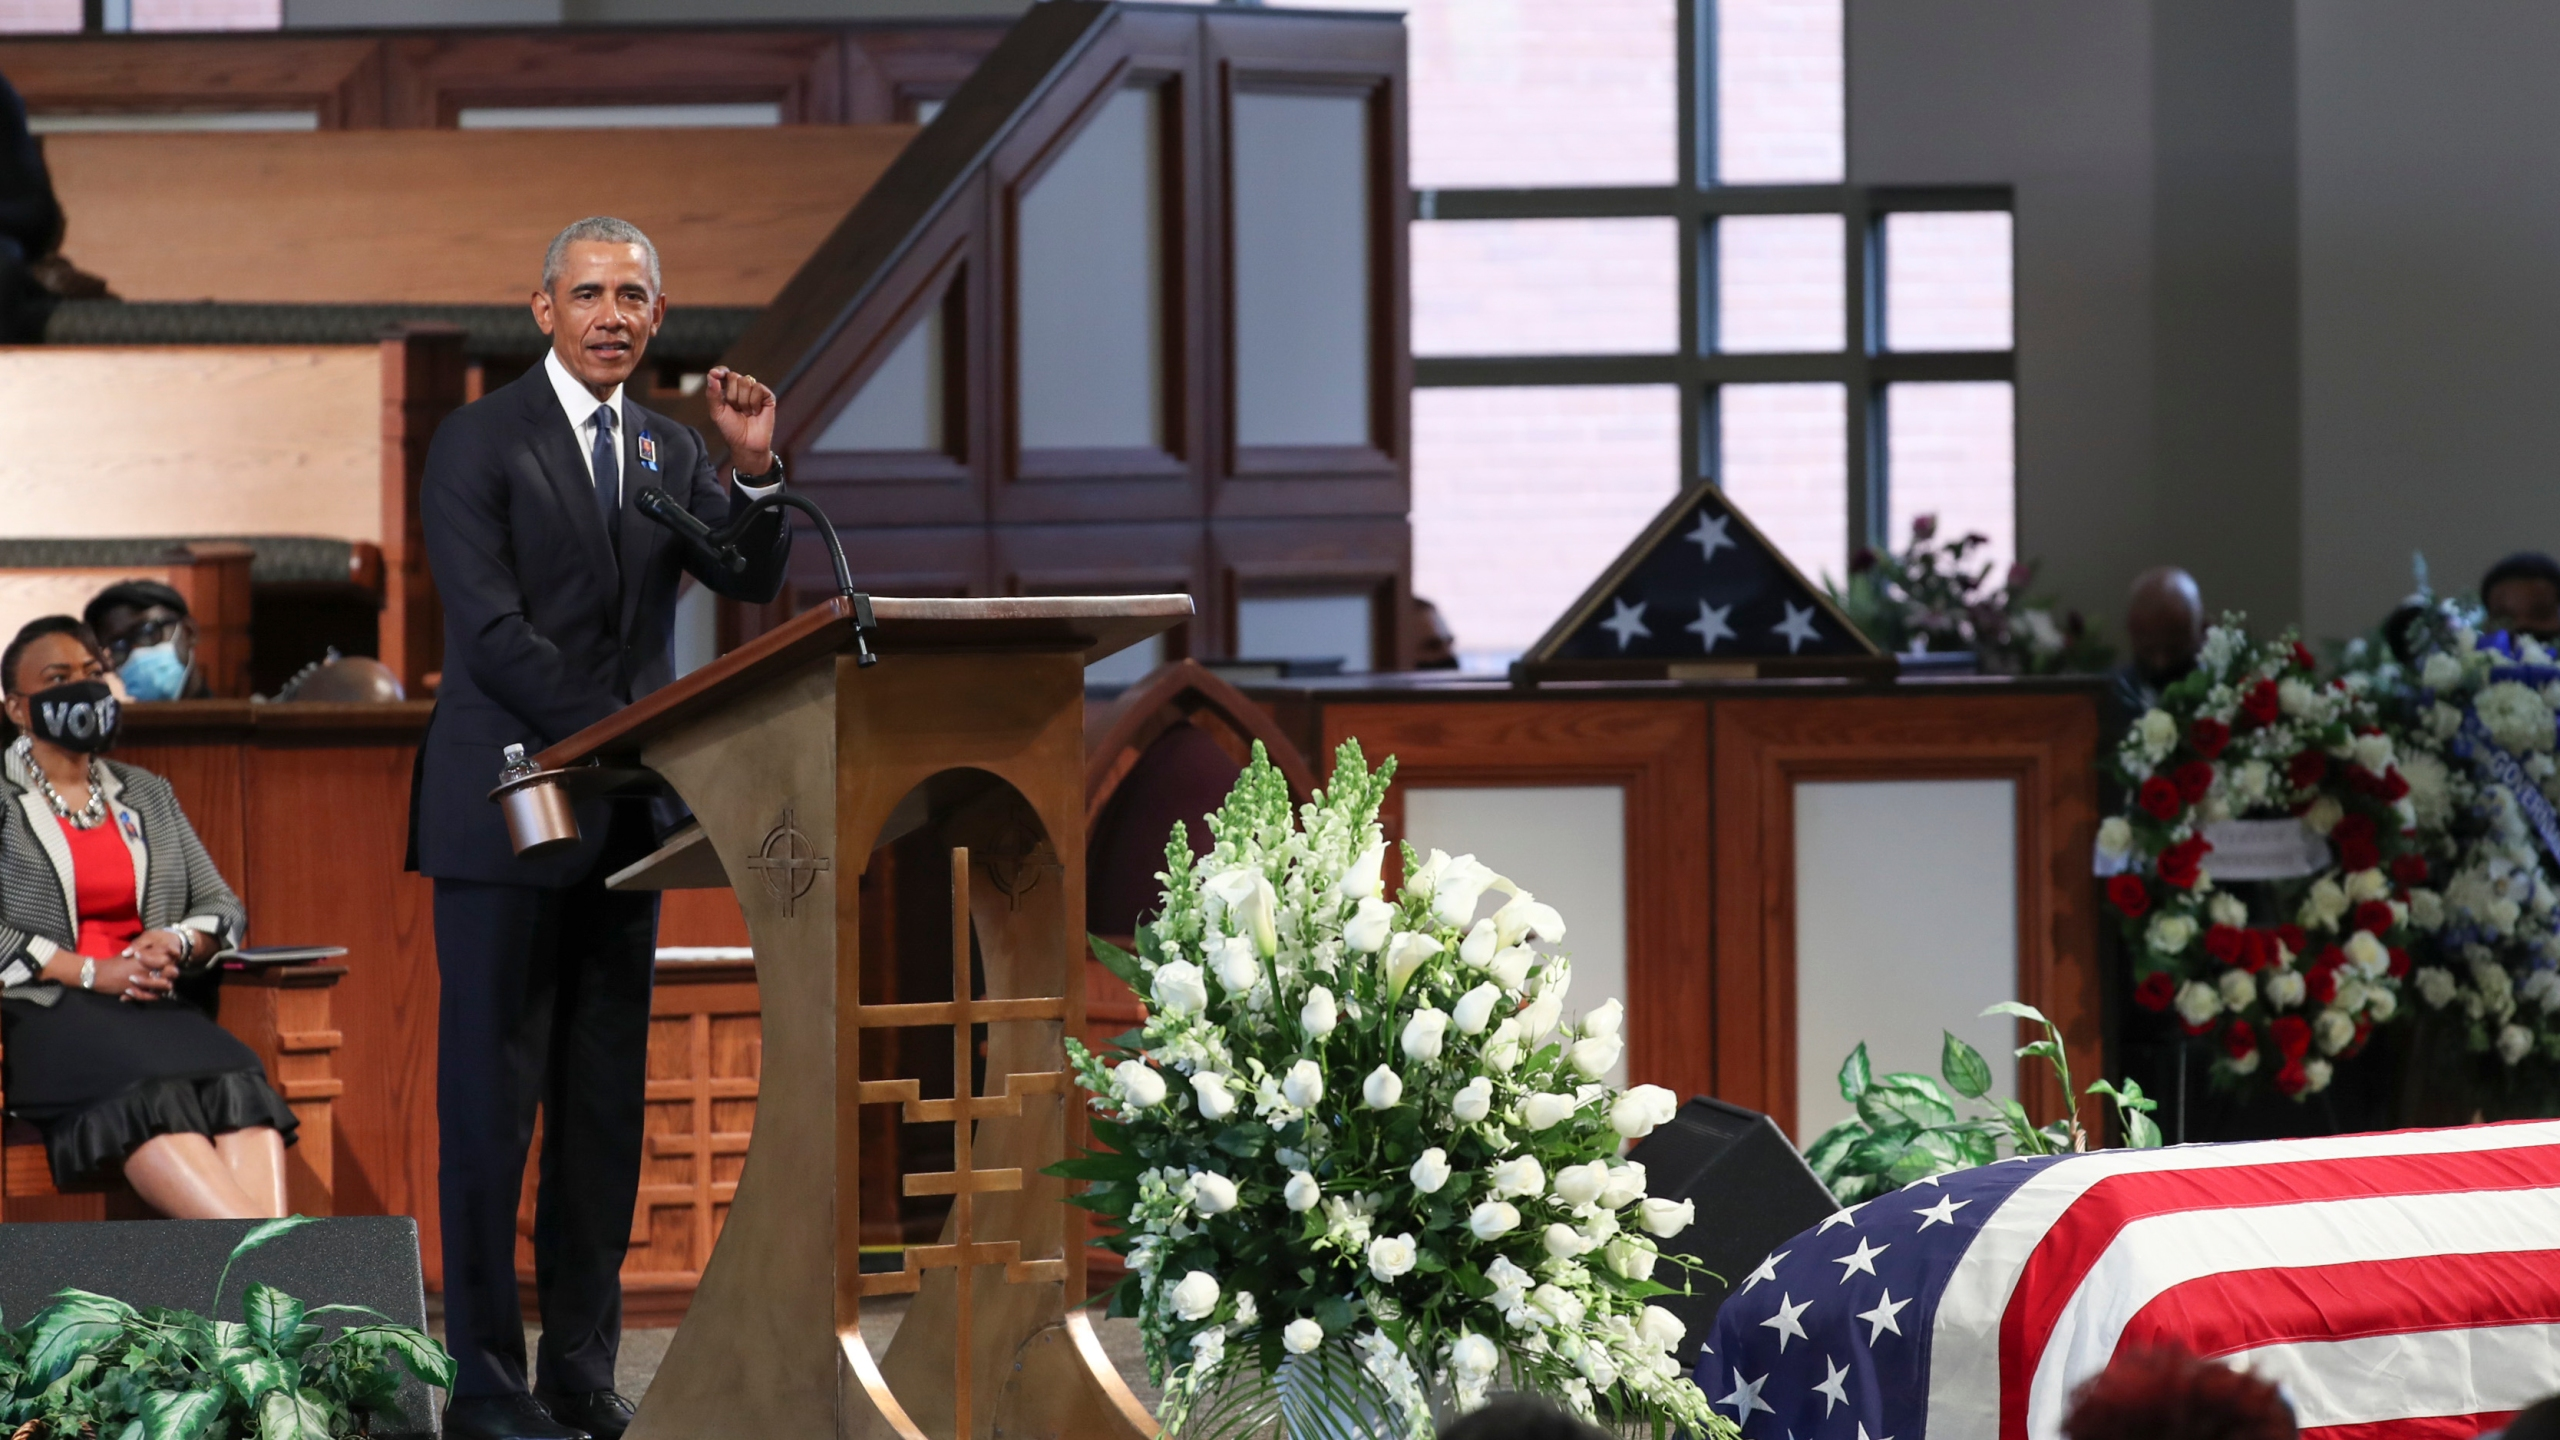 Former US President Barack Obama speaks during the funeral of late Representative and Civil Rights leader John Lewis(D-GA) at the State Capitol in Atlanta, Georgia on July 30, 2020. (ALYSSA POINTER/POOL/AFP via Getty Images)